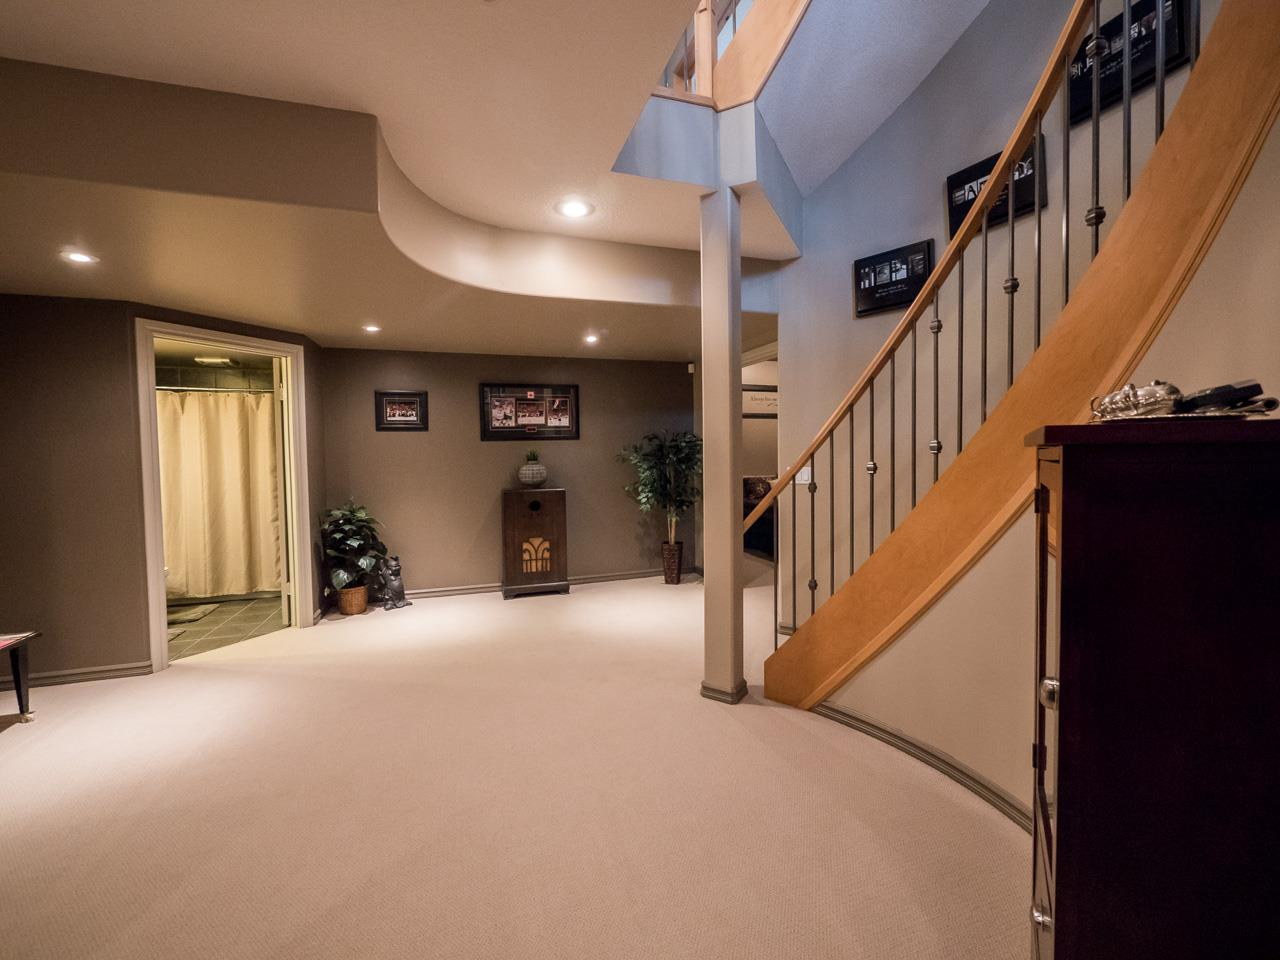 Photo 21: 51543 RR 220: Rural Strathcona County House for sale : MLS(r) # E4072257